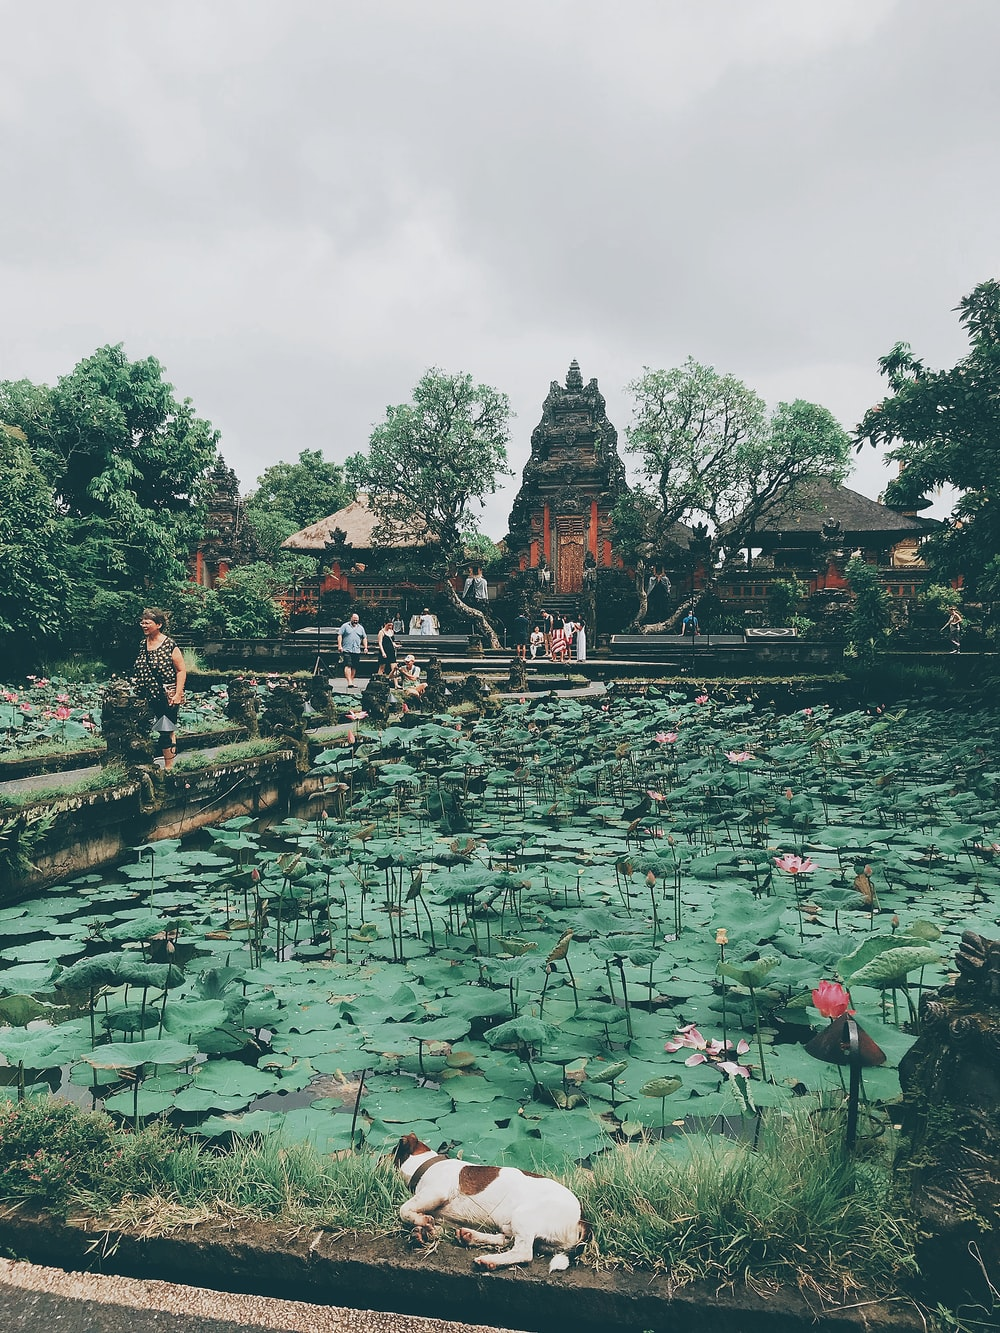 water lily pads on body of water